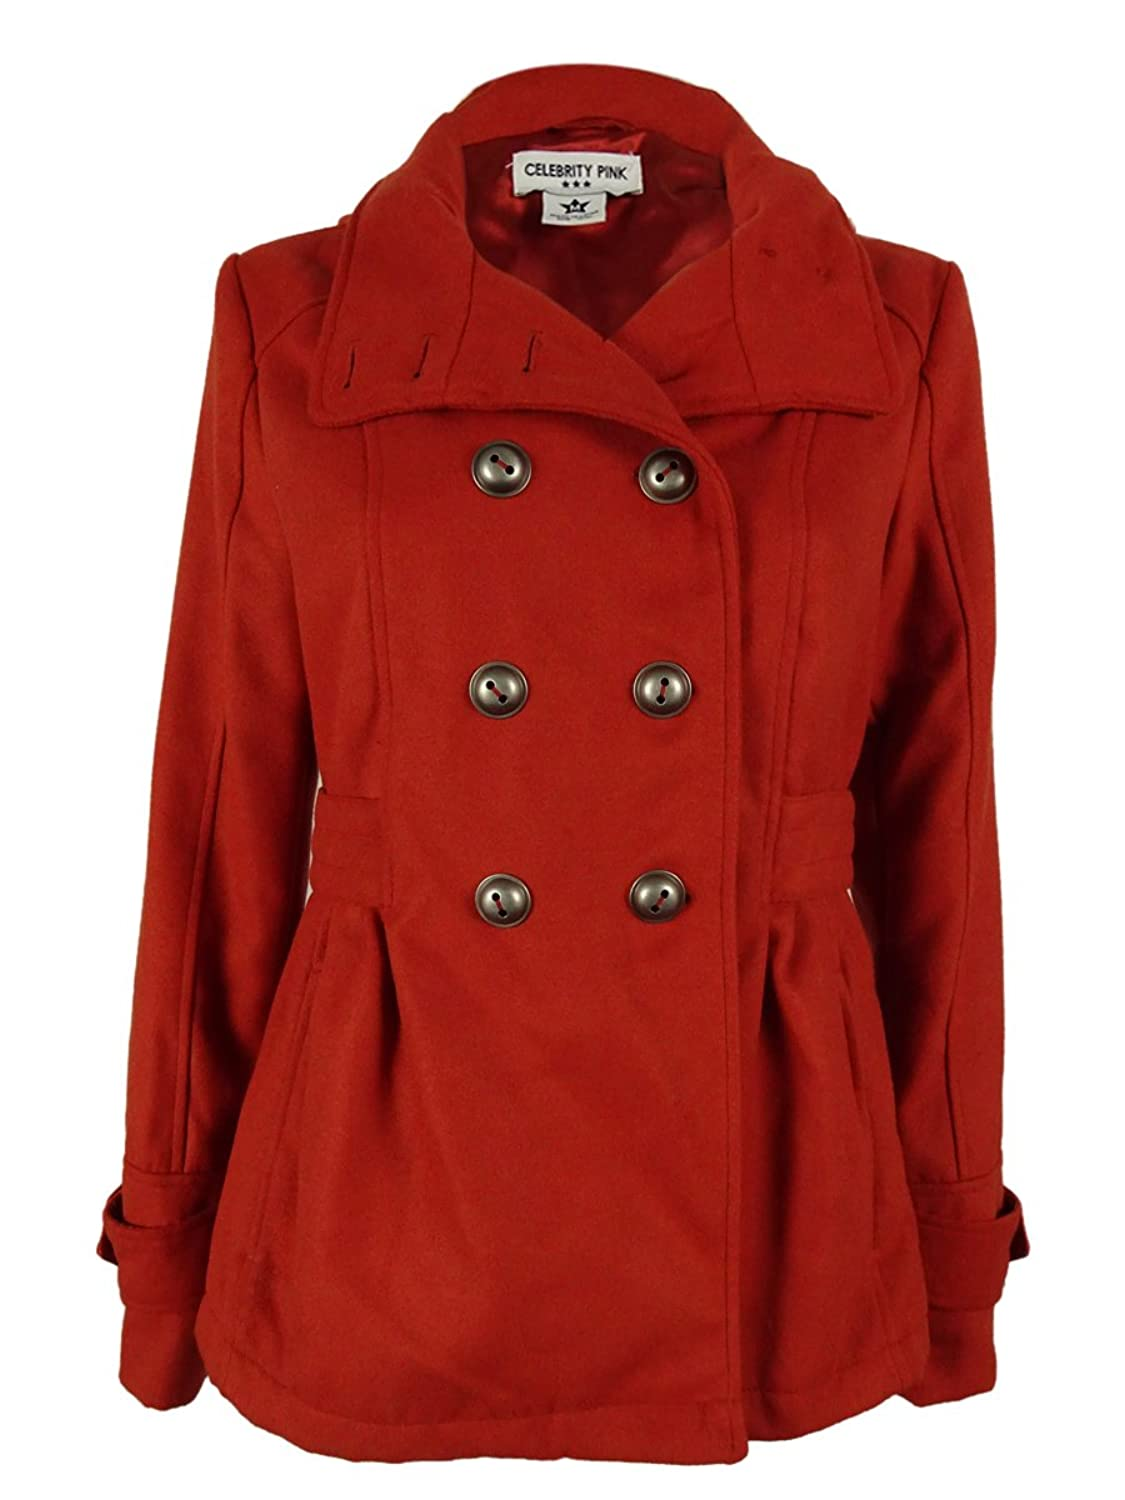 Amazon.com: Celebrity Pink Women's Hooded Double Breasted Peacoat ...